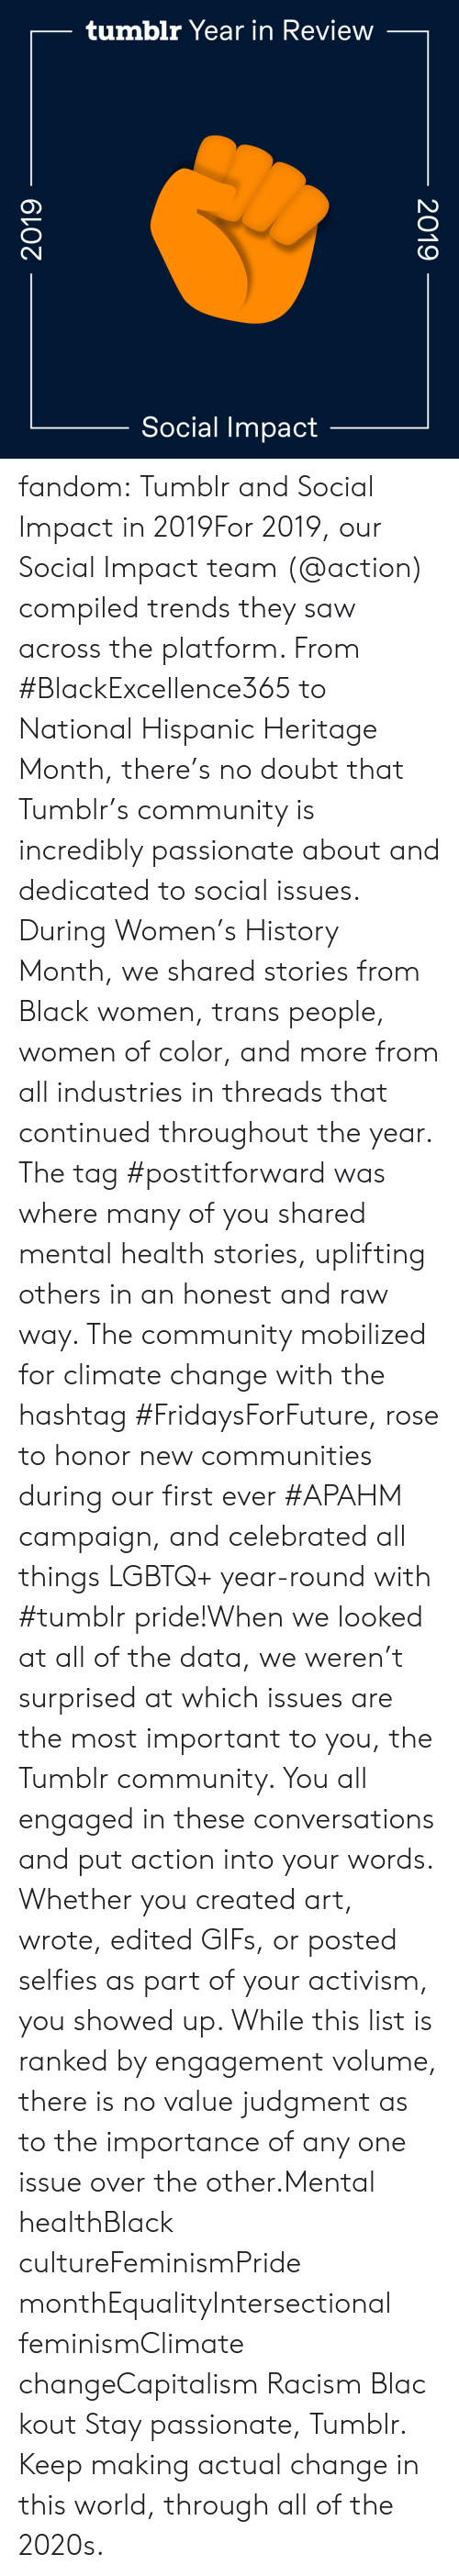 Capitalism: tumblr Year in Review  Social Impact  2019  2019 fandom:  Tumblr and Social Impact in 2019For 2019, our Social Impact team (@action​) compiled trends they saw across the platform. From #BlackExcellence365 to National Hispanic Heritage Month, there's no doubt that Tumblr's community is incredibly passionate about and dedicated to social issues. During Women's History Month, we shared stories from Black women, trans people, women of color, and more from all industries in threads that continued throughout the year. The tag #postitforward was where many of you shared mental health stories, uplifting others in an honest and raw way. The community mobilized for climate change with the hashtag #FridaysForFuture, rose to honor new communities during our first ever #APAHM campaign, and celebrated all things LGBTQ+ year-round with #tumblr pride!When we looked at all of the data, we weren't surprised at which issues are the most important to you, the Tumblr community. You all engaged in these conversations and put action into your words. Whether you created art, wrote, edited GIFs, or posted selfies as part of your activism, you showed up. While this list is ranked by engagement volume, there is no value judgment as to the importance of any one issue over the other.Mental healthBlack cultureFeminismPride monthEqualityIntersectional feminismClimate changeCapitalism Racism Blackout Stay passionate, Tumblr. Keep making actual change in this world, through all of the 2020s.